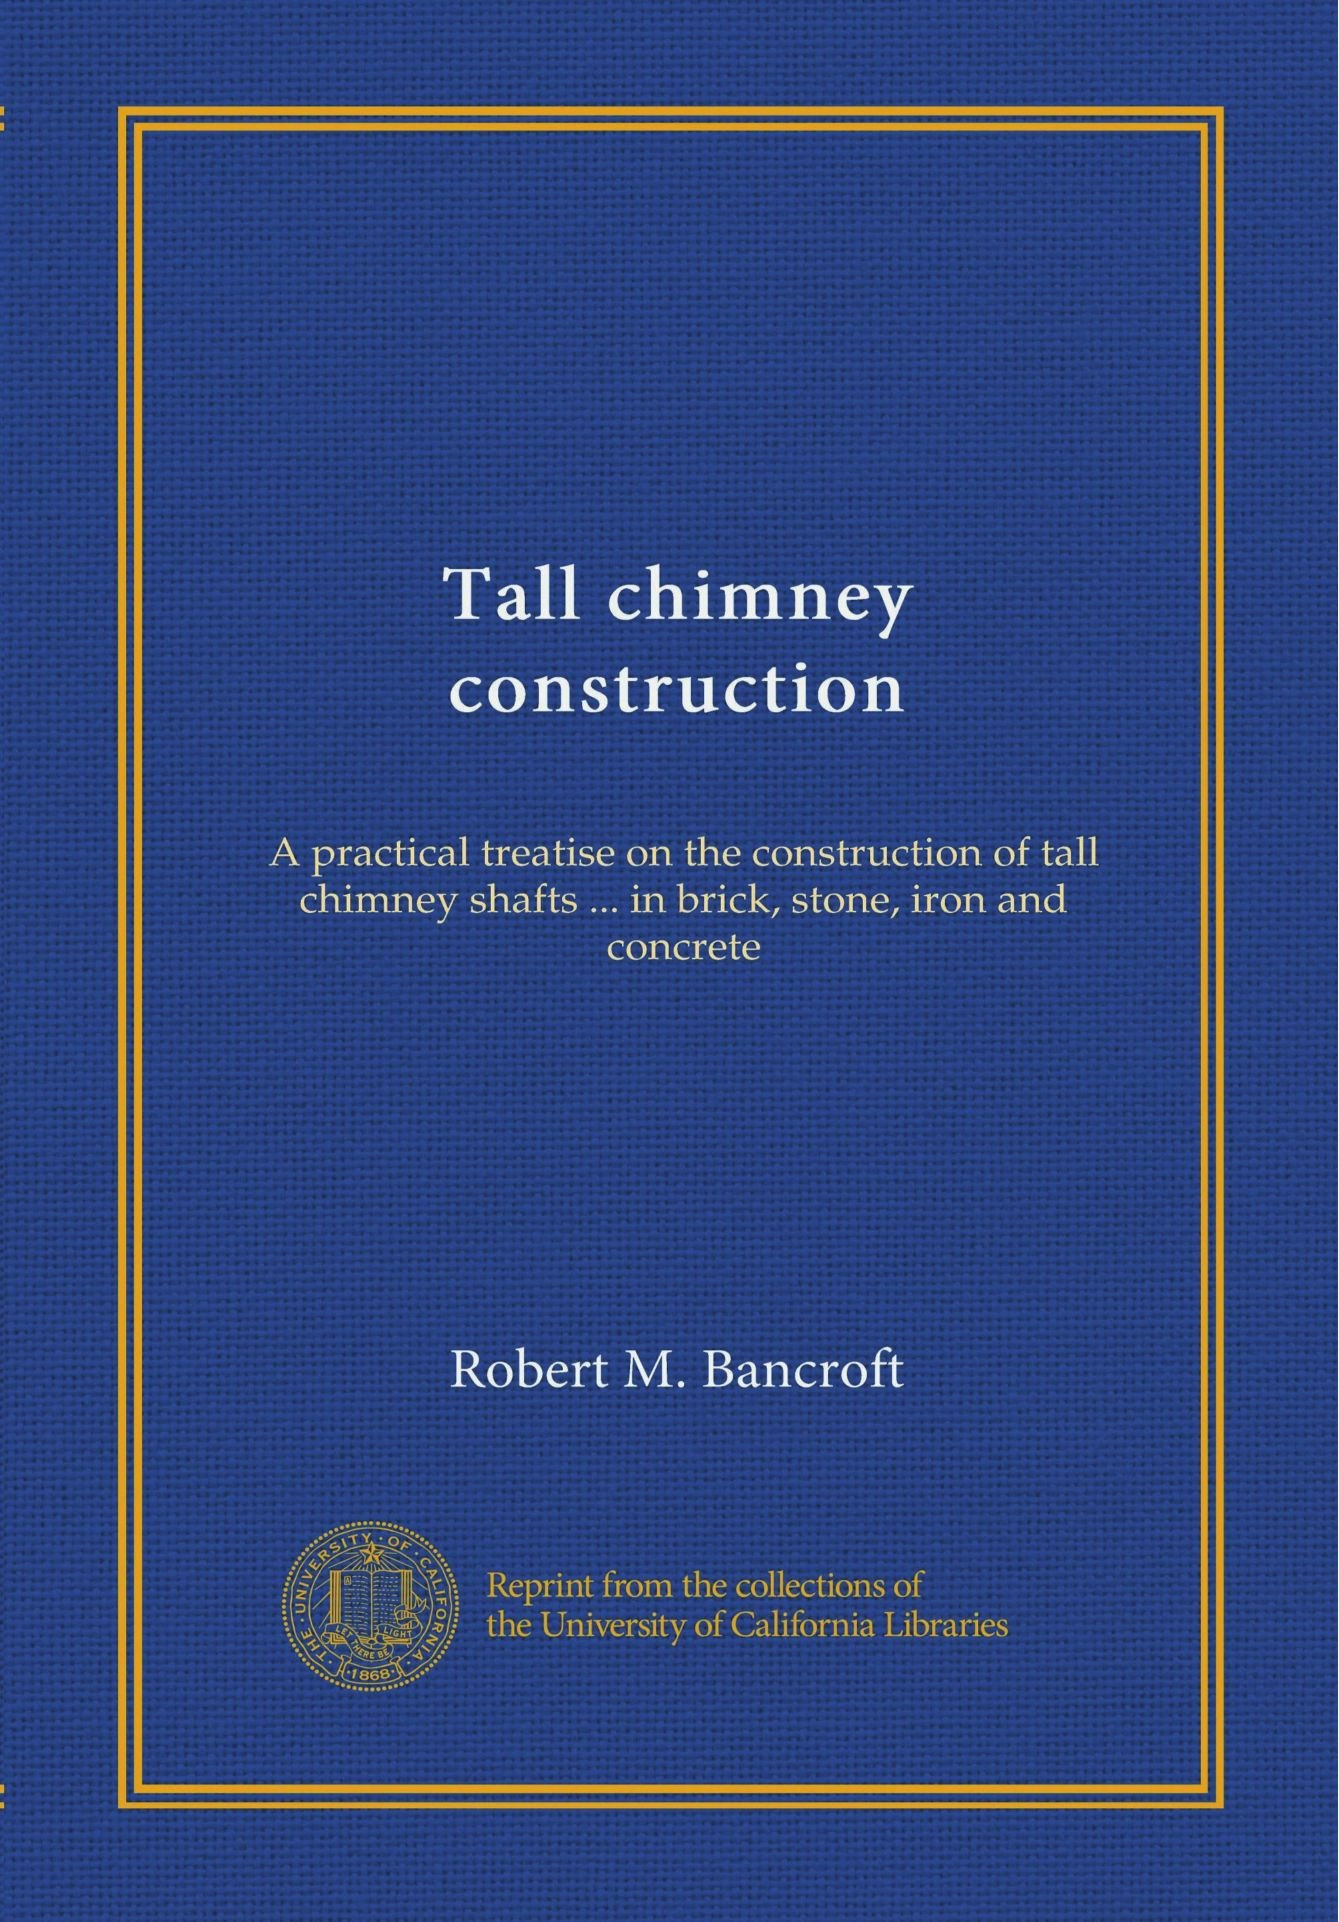 Tall chimney construction: A practical treatise on the construction of tall chimney shafts ... in brick, stone, iron and concrete